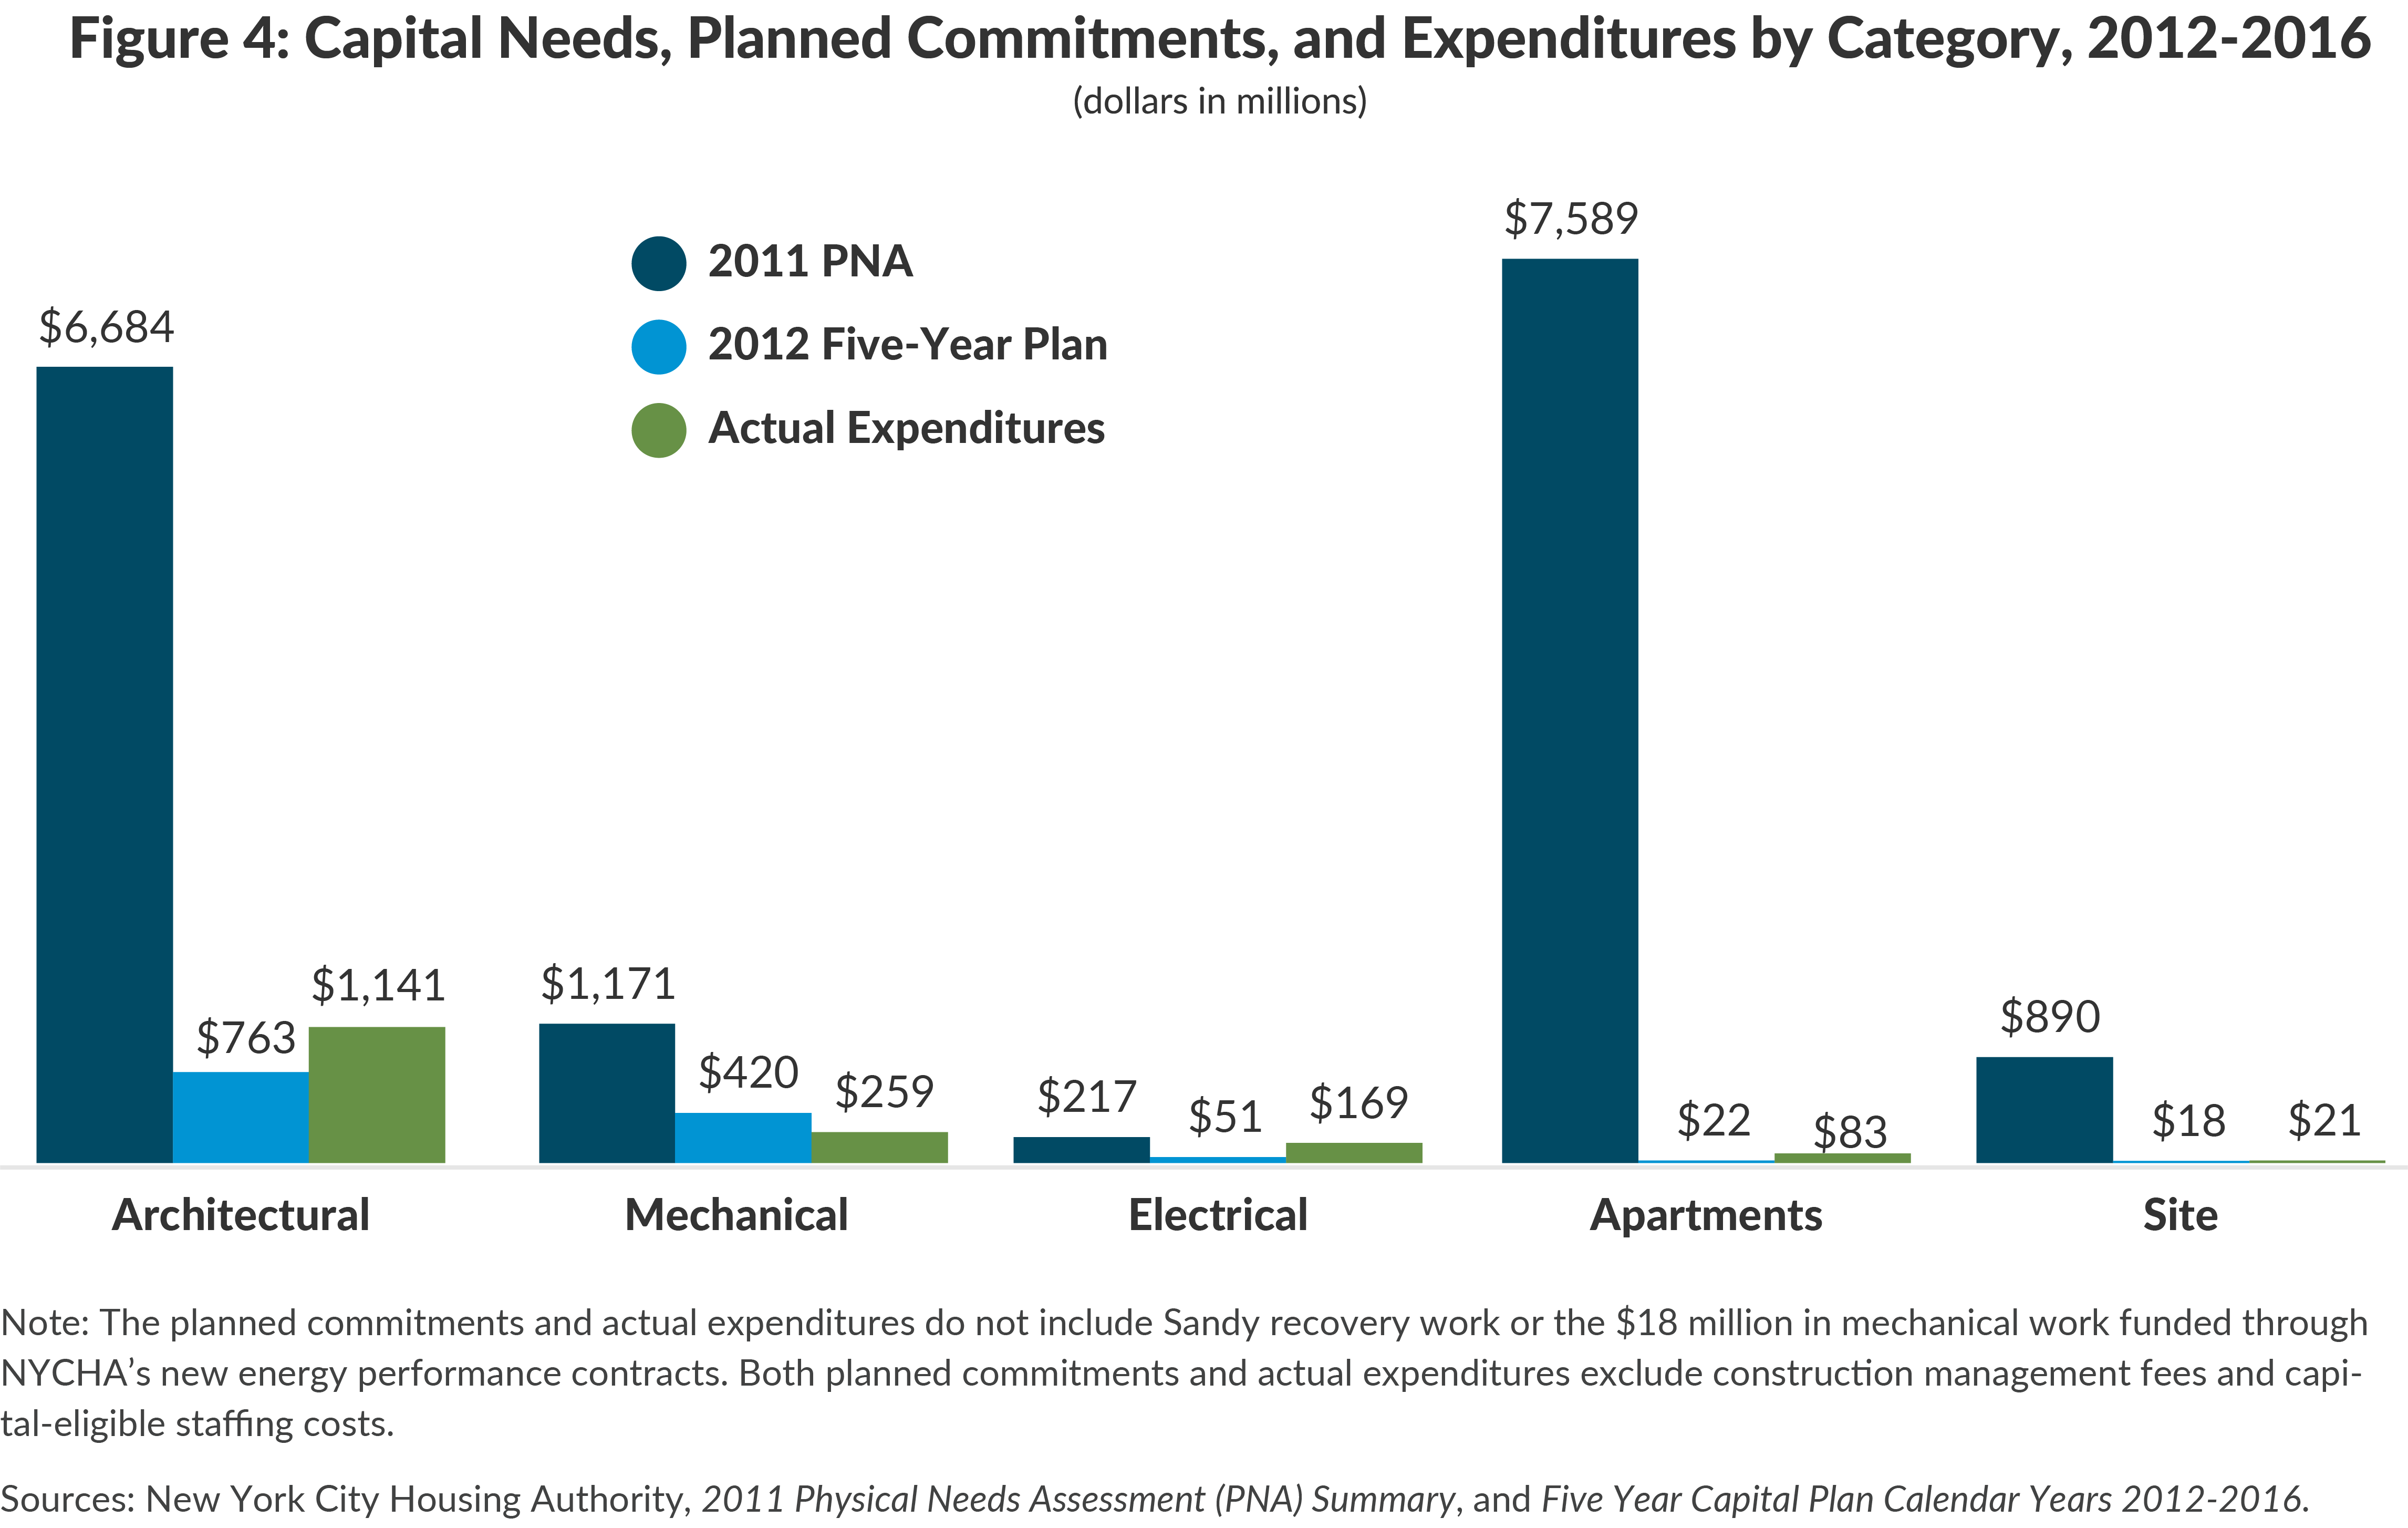 Figure 4: Capital Needs, Planned Commitments, and Expenditures by Category, 2012-2016